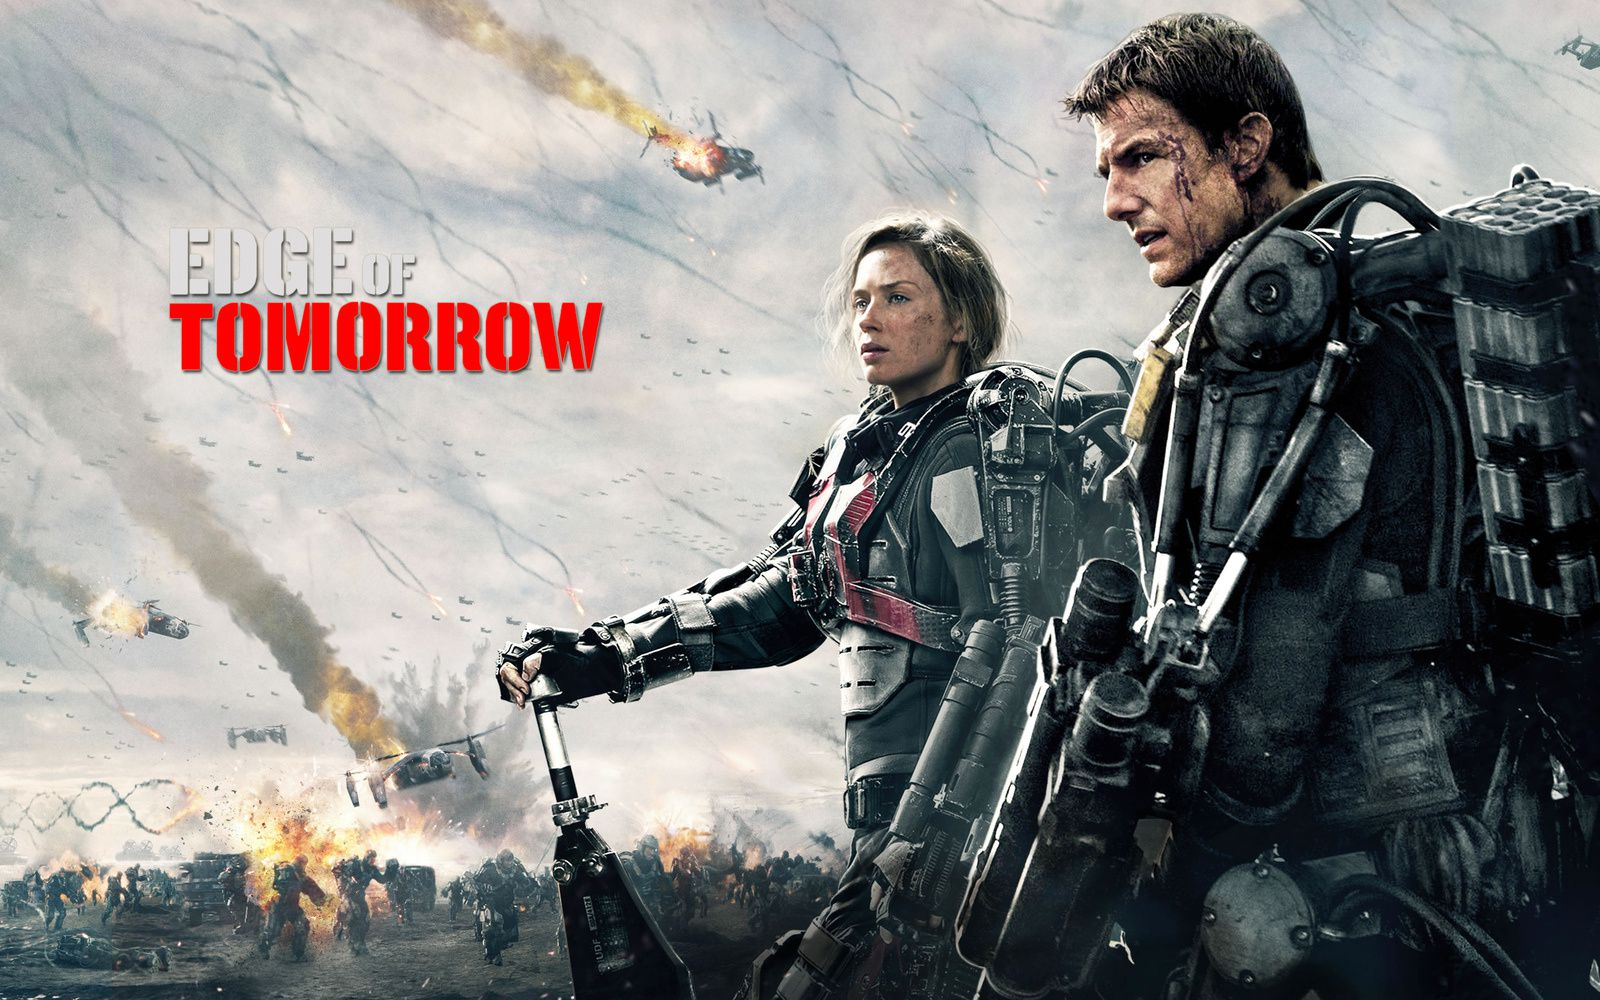 Edge of Tomorrow, trailer et spot TV